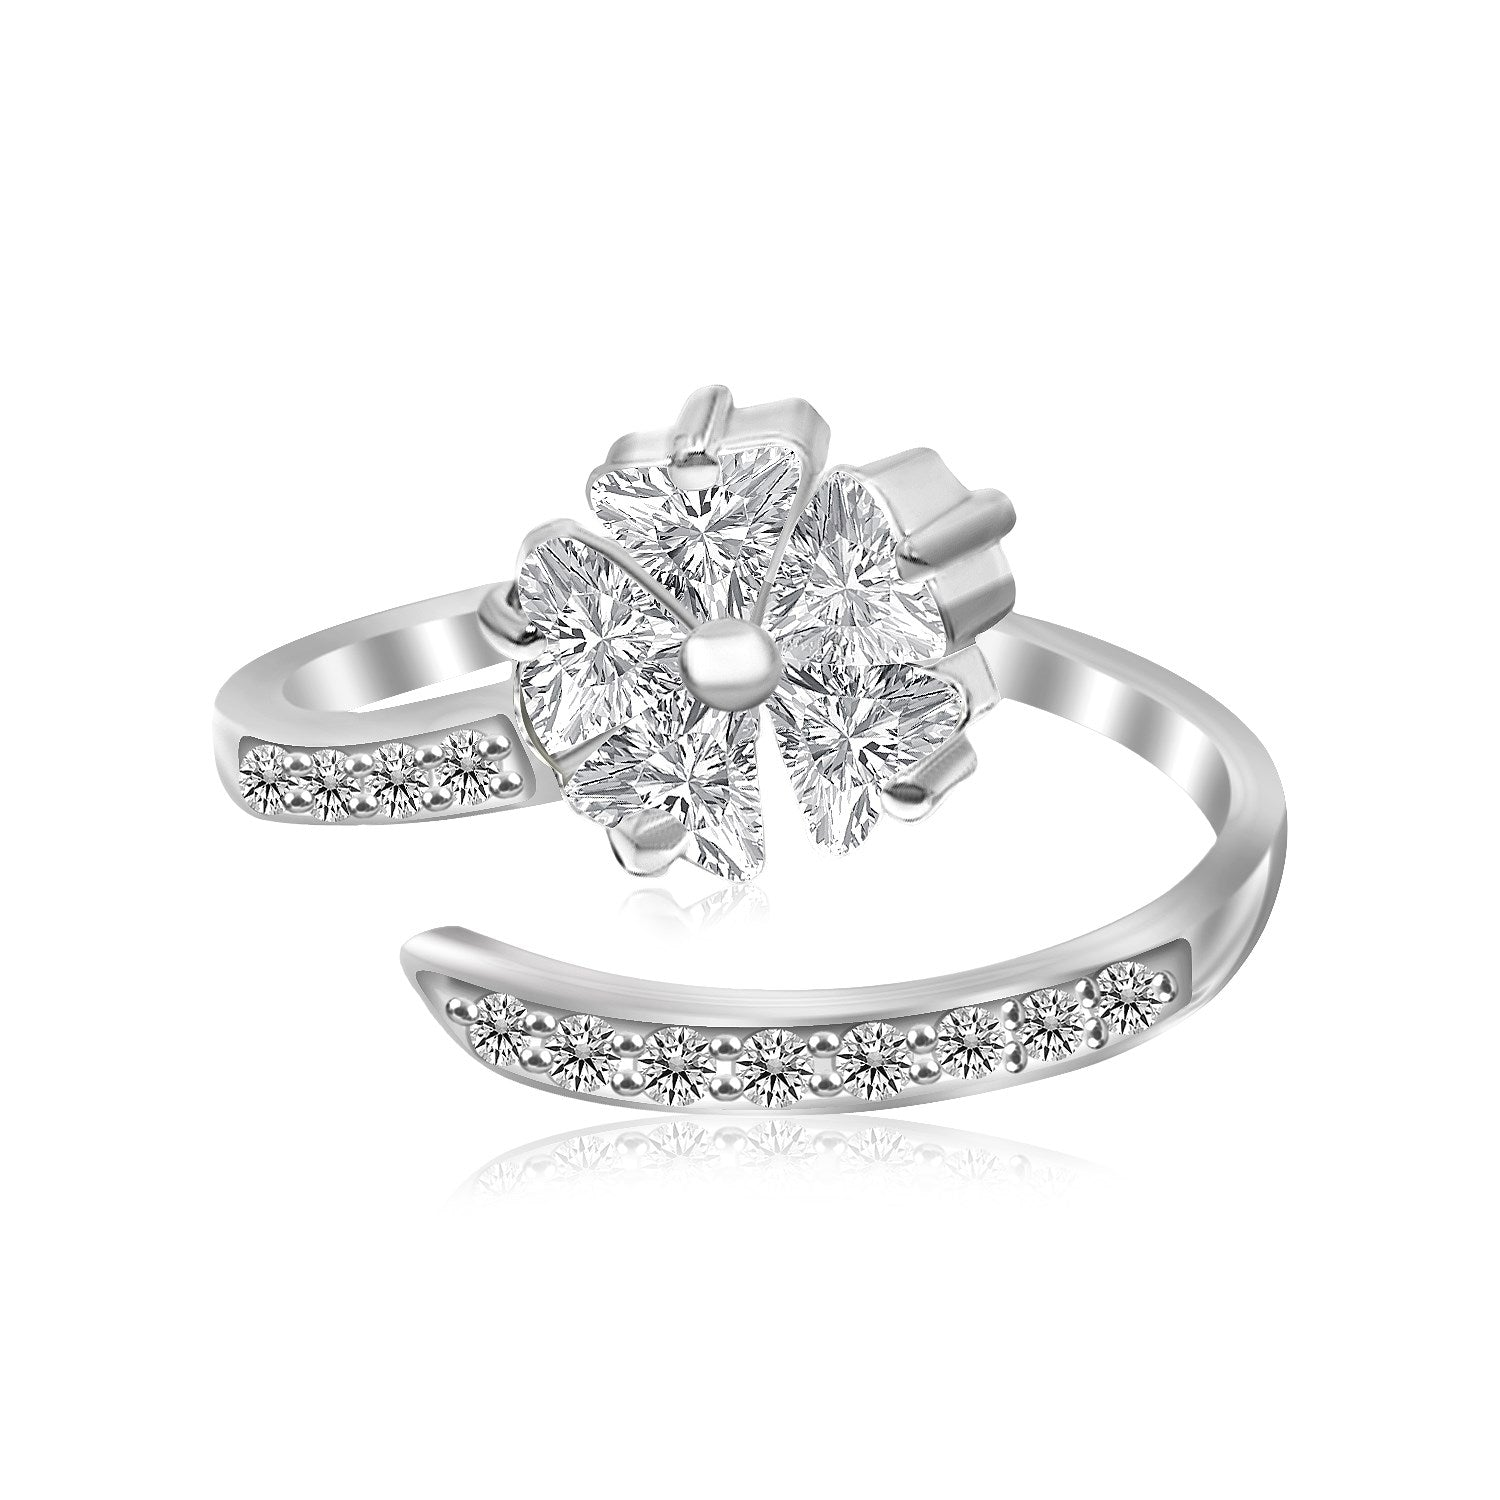 Sterling Silver Rhodium Finished Floral Motif Cubic Zirconia Toe Ring - Uniquepedia.com